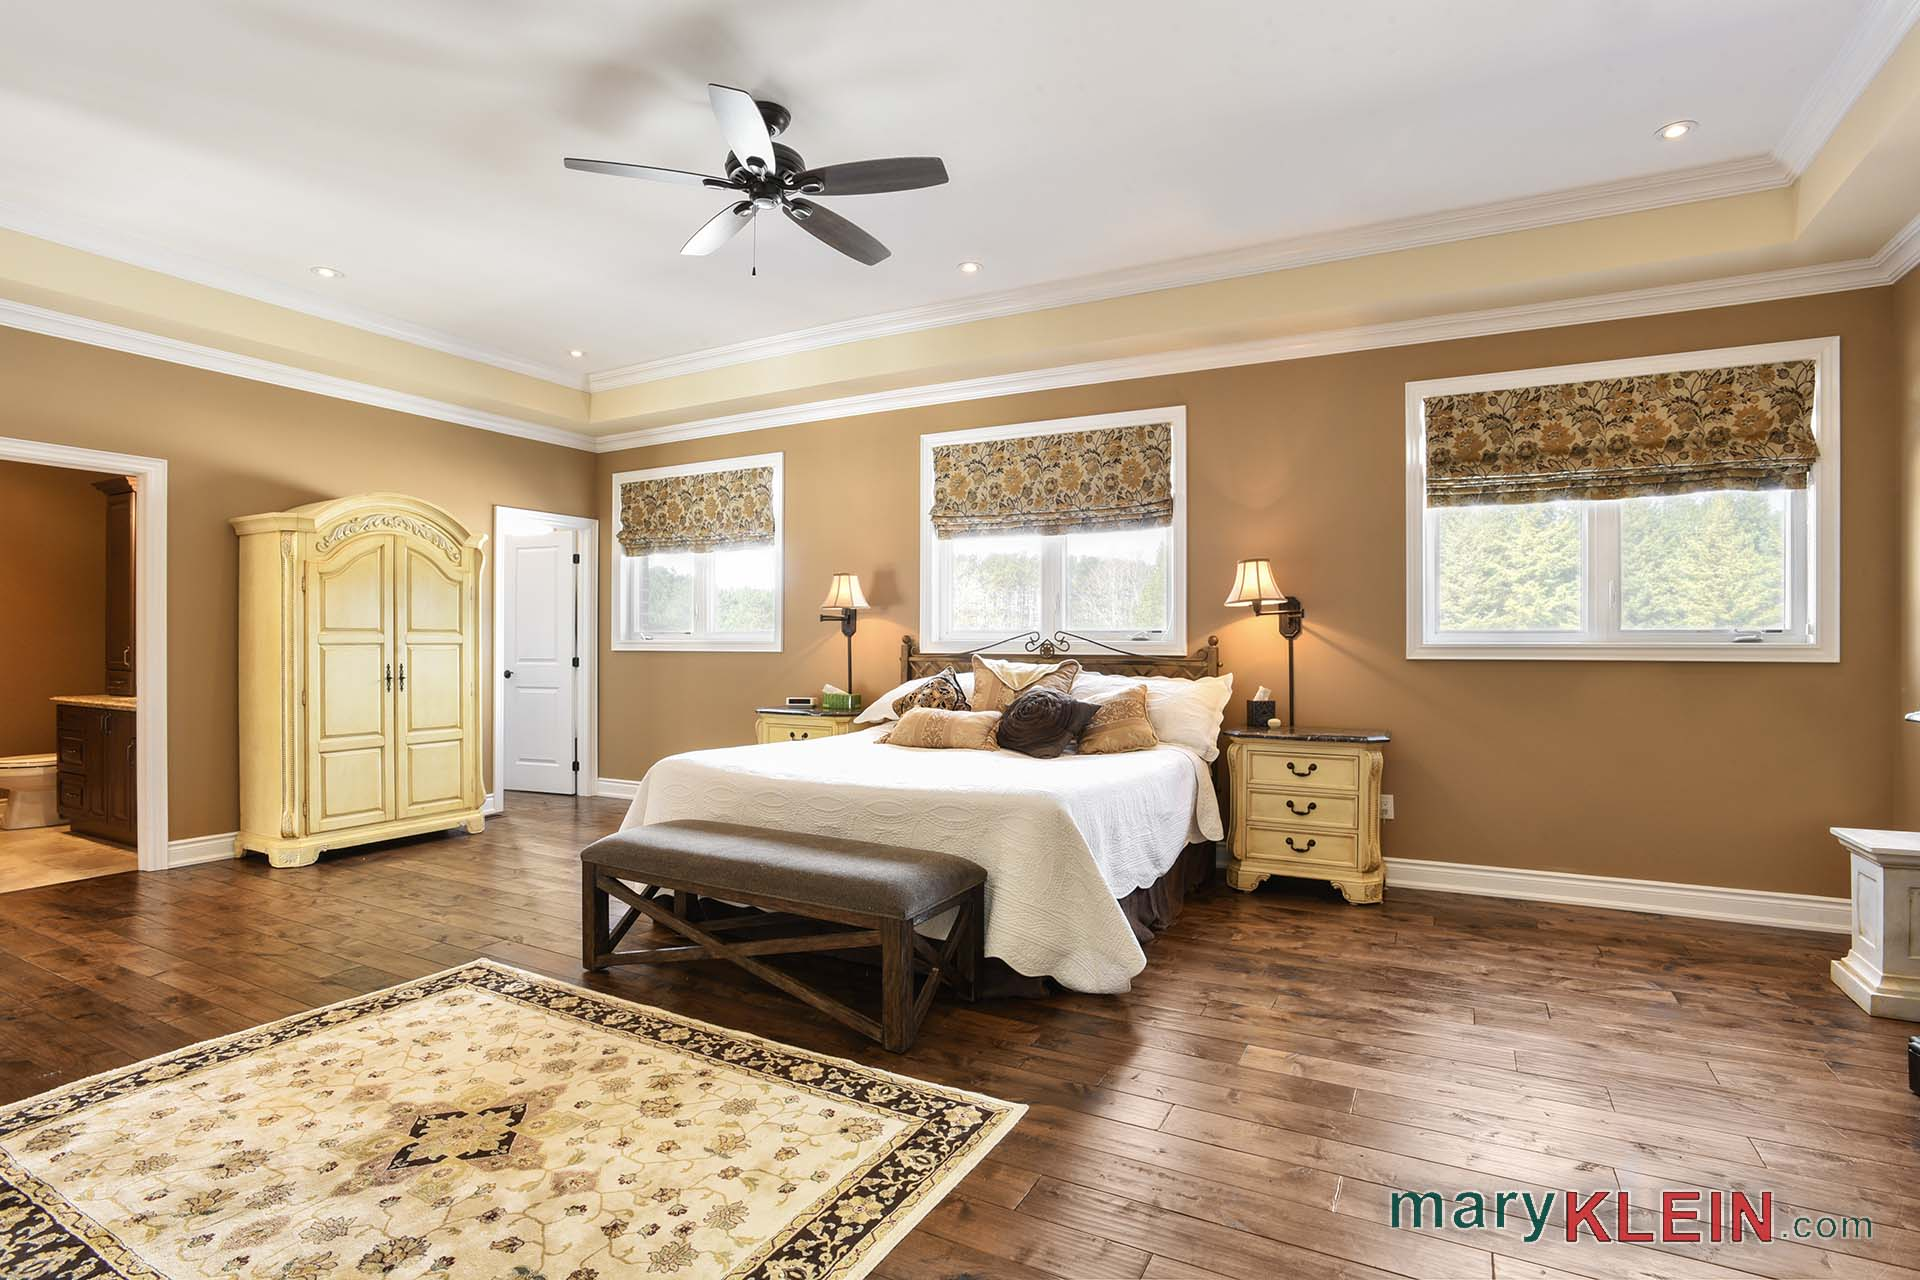 Master Bedroom, His and Hers Closets and Ensuites